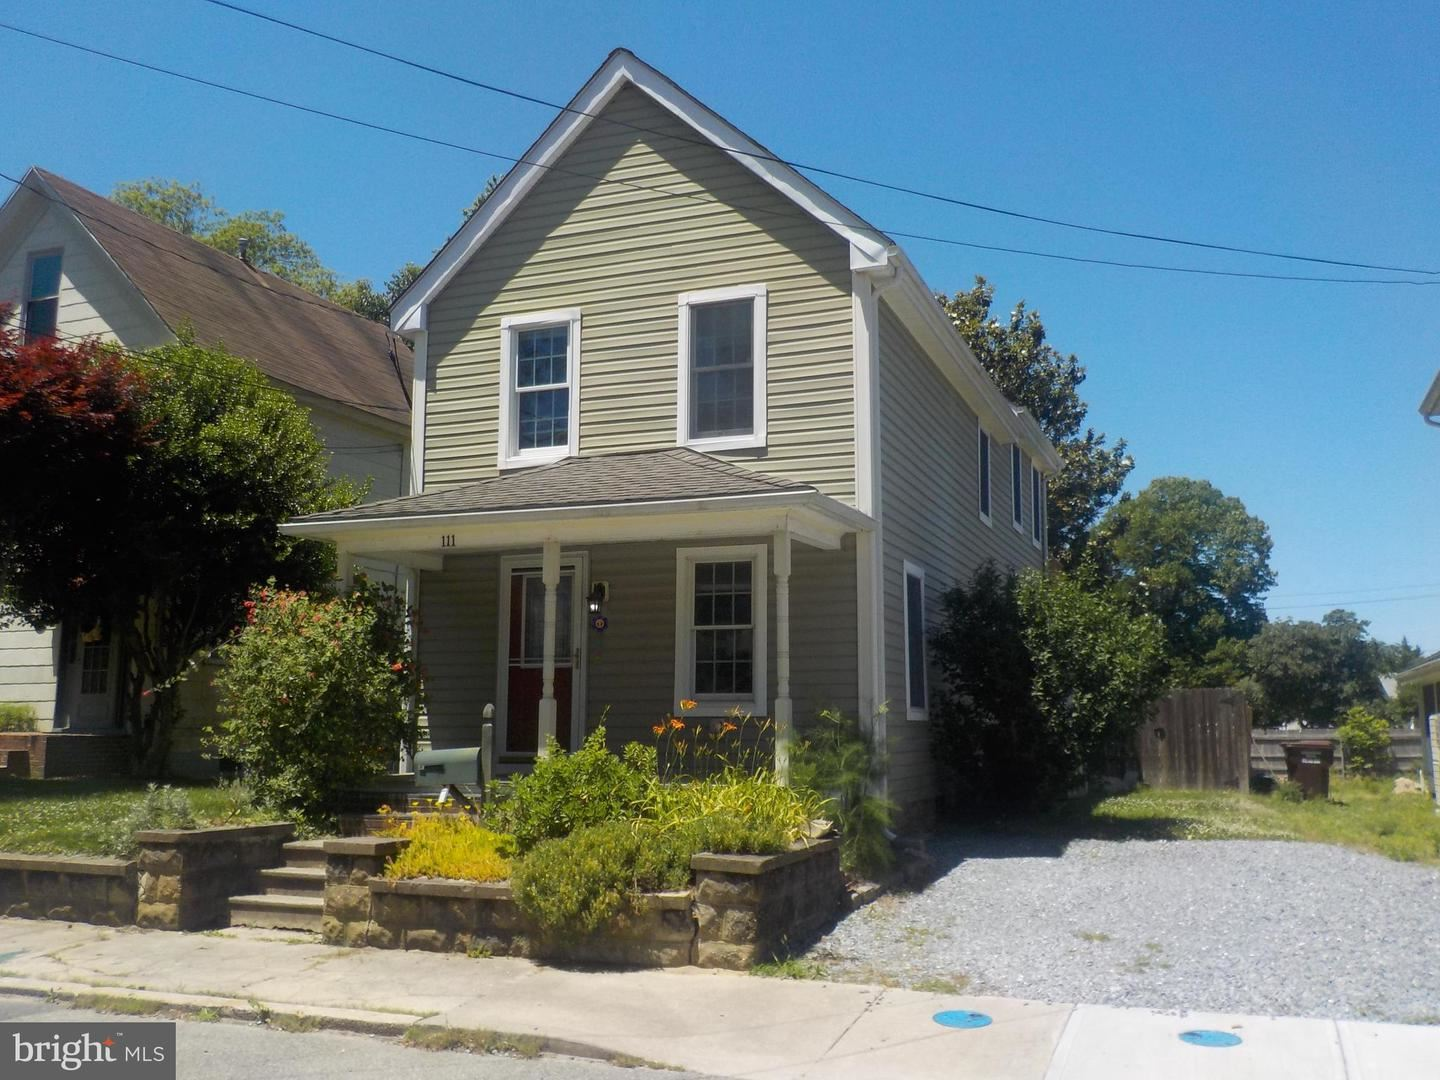 Photo of 111 VUE DELEAU ST, CAMBRIDGE, MD 21613 (MLS # MDDO125688)